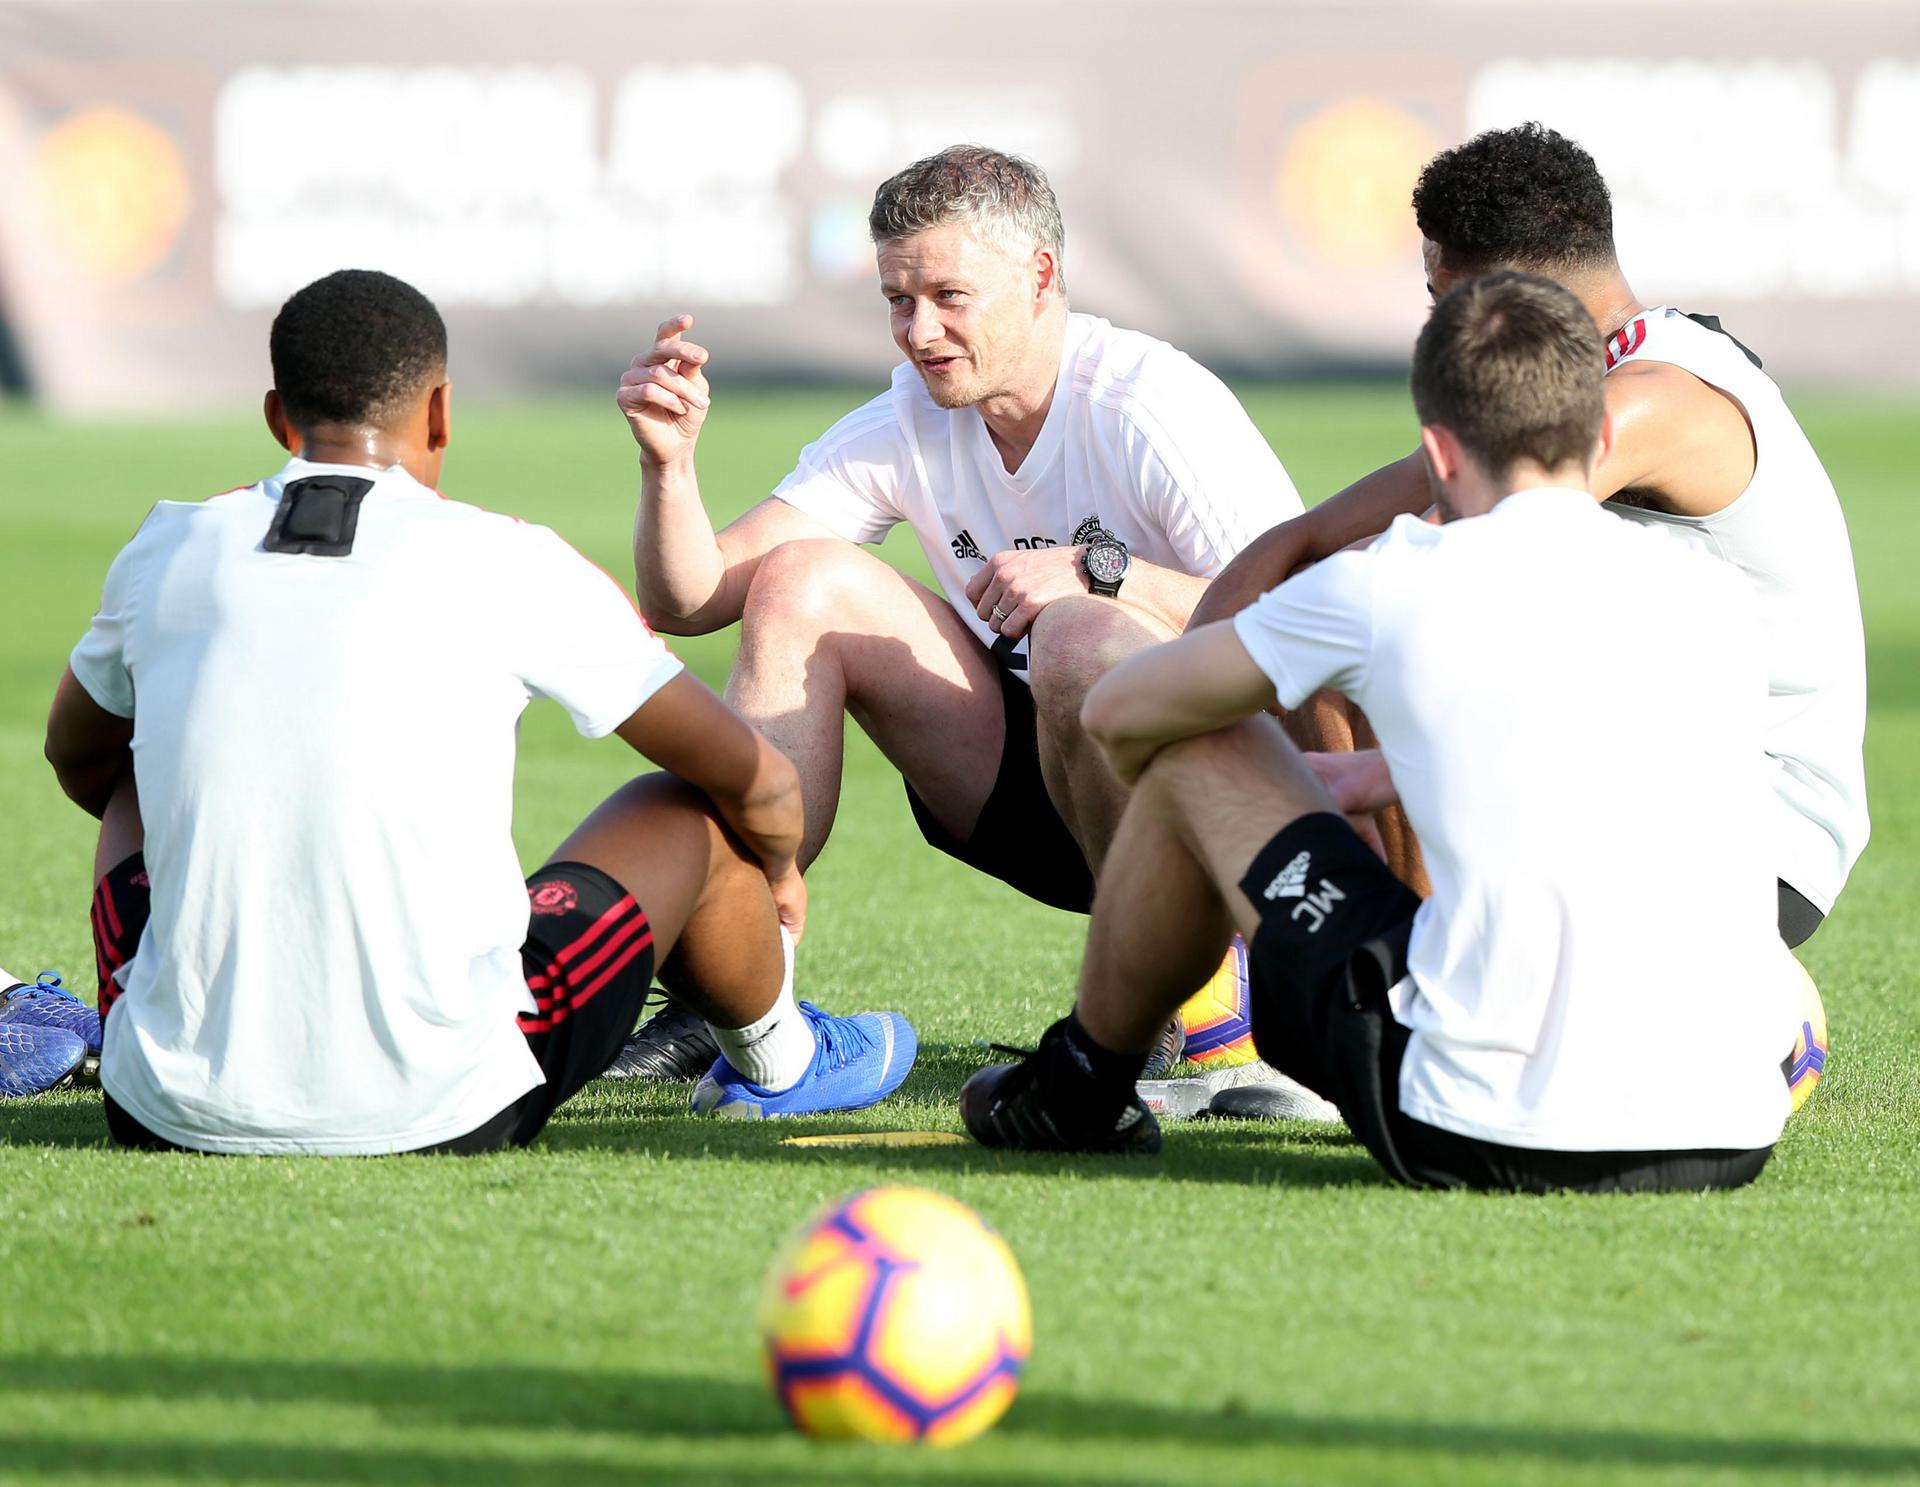 Ole Gunnar Solskjaer talks to his players in Dubai during a training camp.